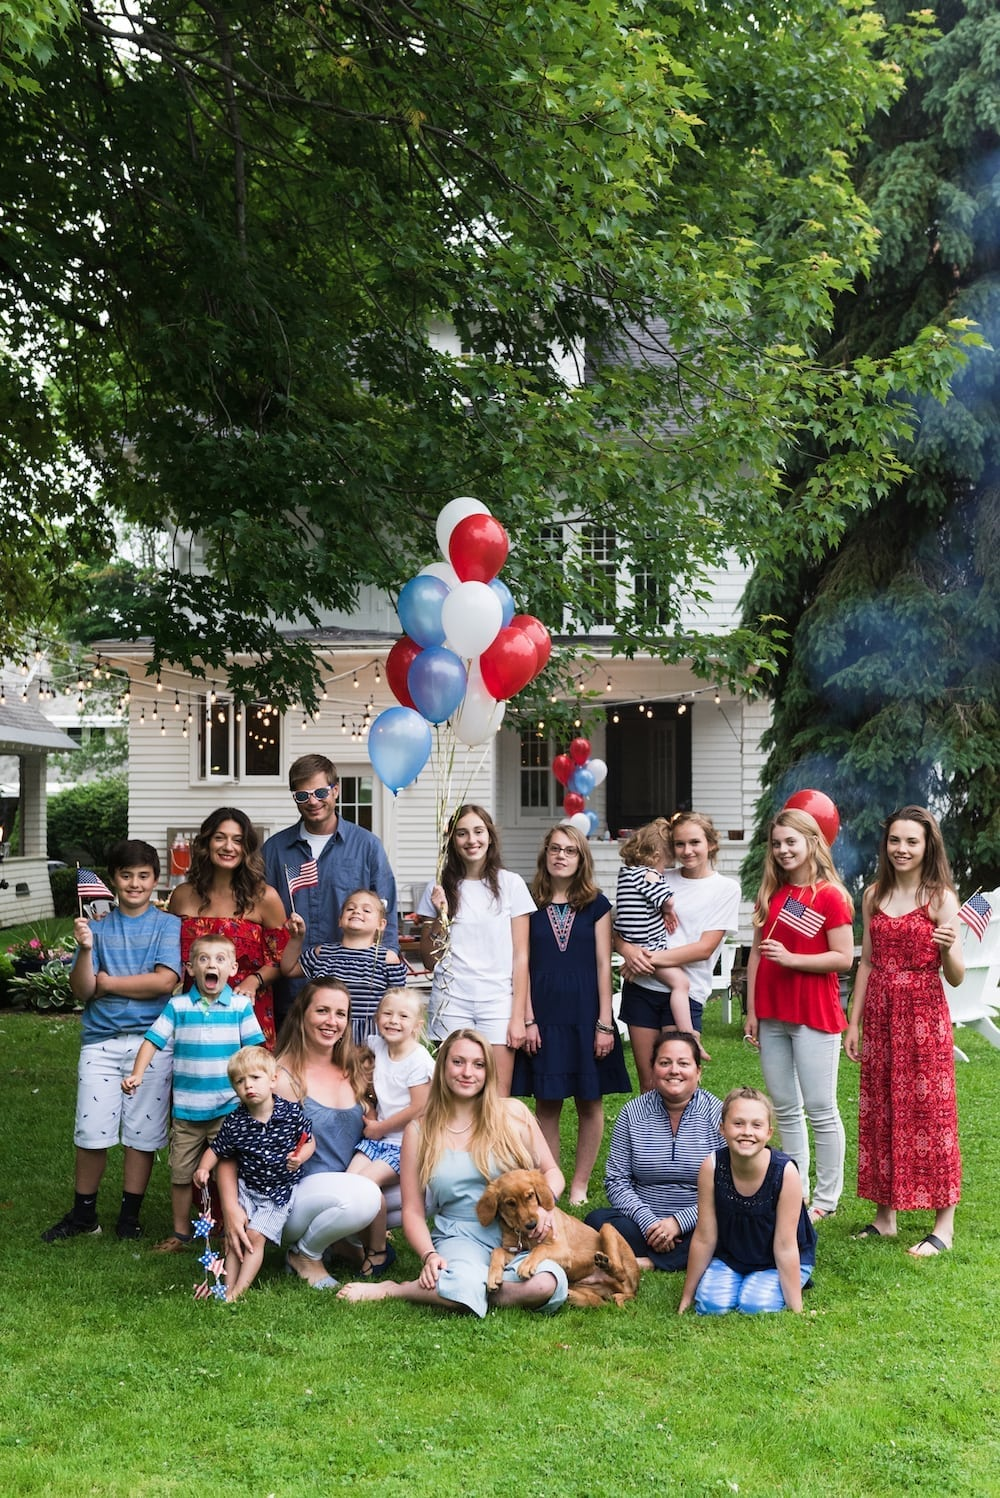 Give Me Liberty! A Modern Americana Inspired Backyard 4th of July Party